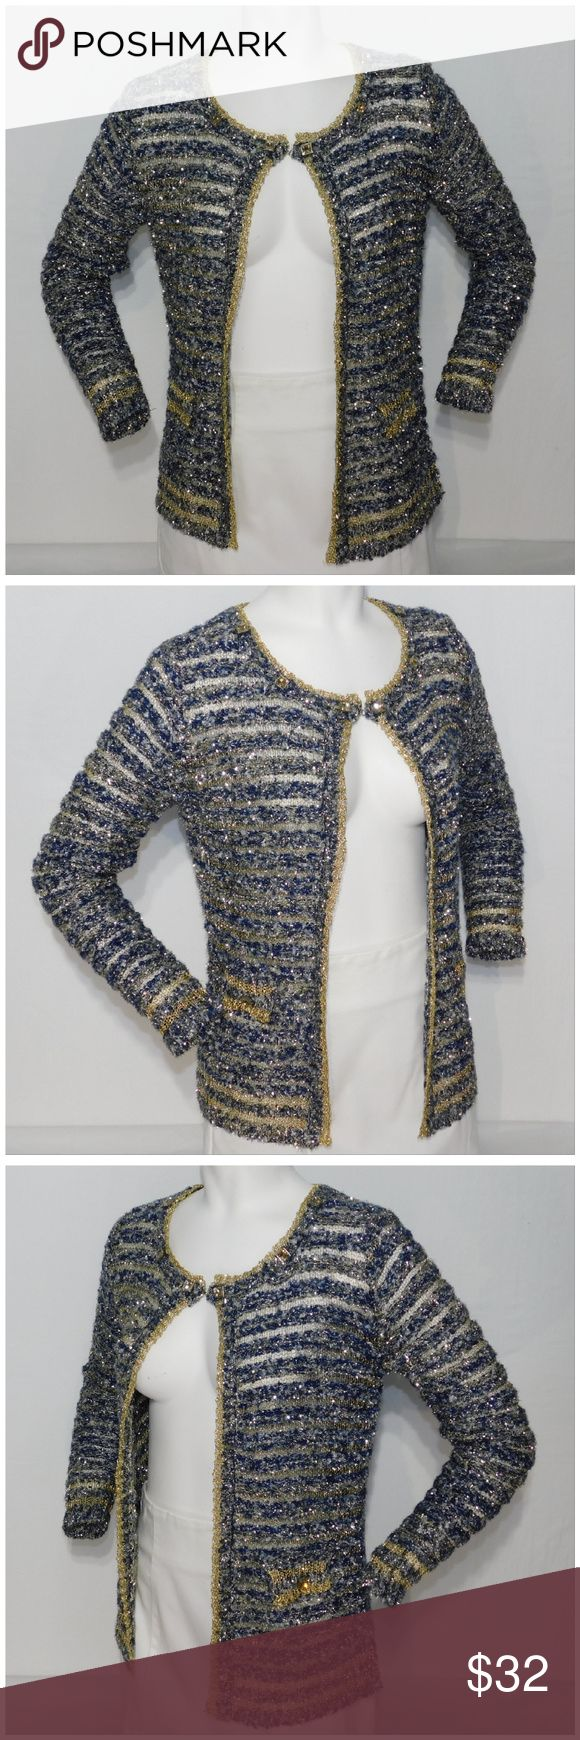 """NWT, TESTORI Rhinestone Metallic Cardigan, size XL NWT, TESTORI,  Rhinestone Metallic Open Weave Dressy Cardigan, size L/XL Large X-Large See Measurements Listed as XL in size category, NEW WITH TAG, faux flap pockets with large decorative rhinestone, light-weight sparkly stretchy open knit, 70% polyester, 30% metallic, approximate measurements: 24"""" length, 19 - 22"""" bust laying flat, 24"""" sleeves. ADD TO A BUNDLE! 30% Automatically Discounted on all Bundles! Testori Sweaters Cardigans"""